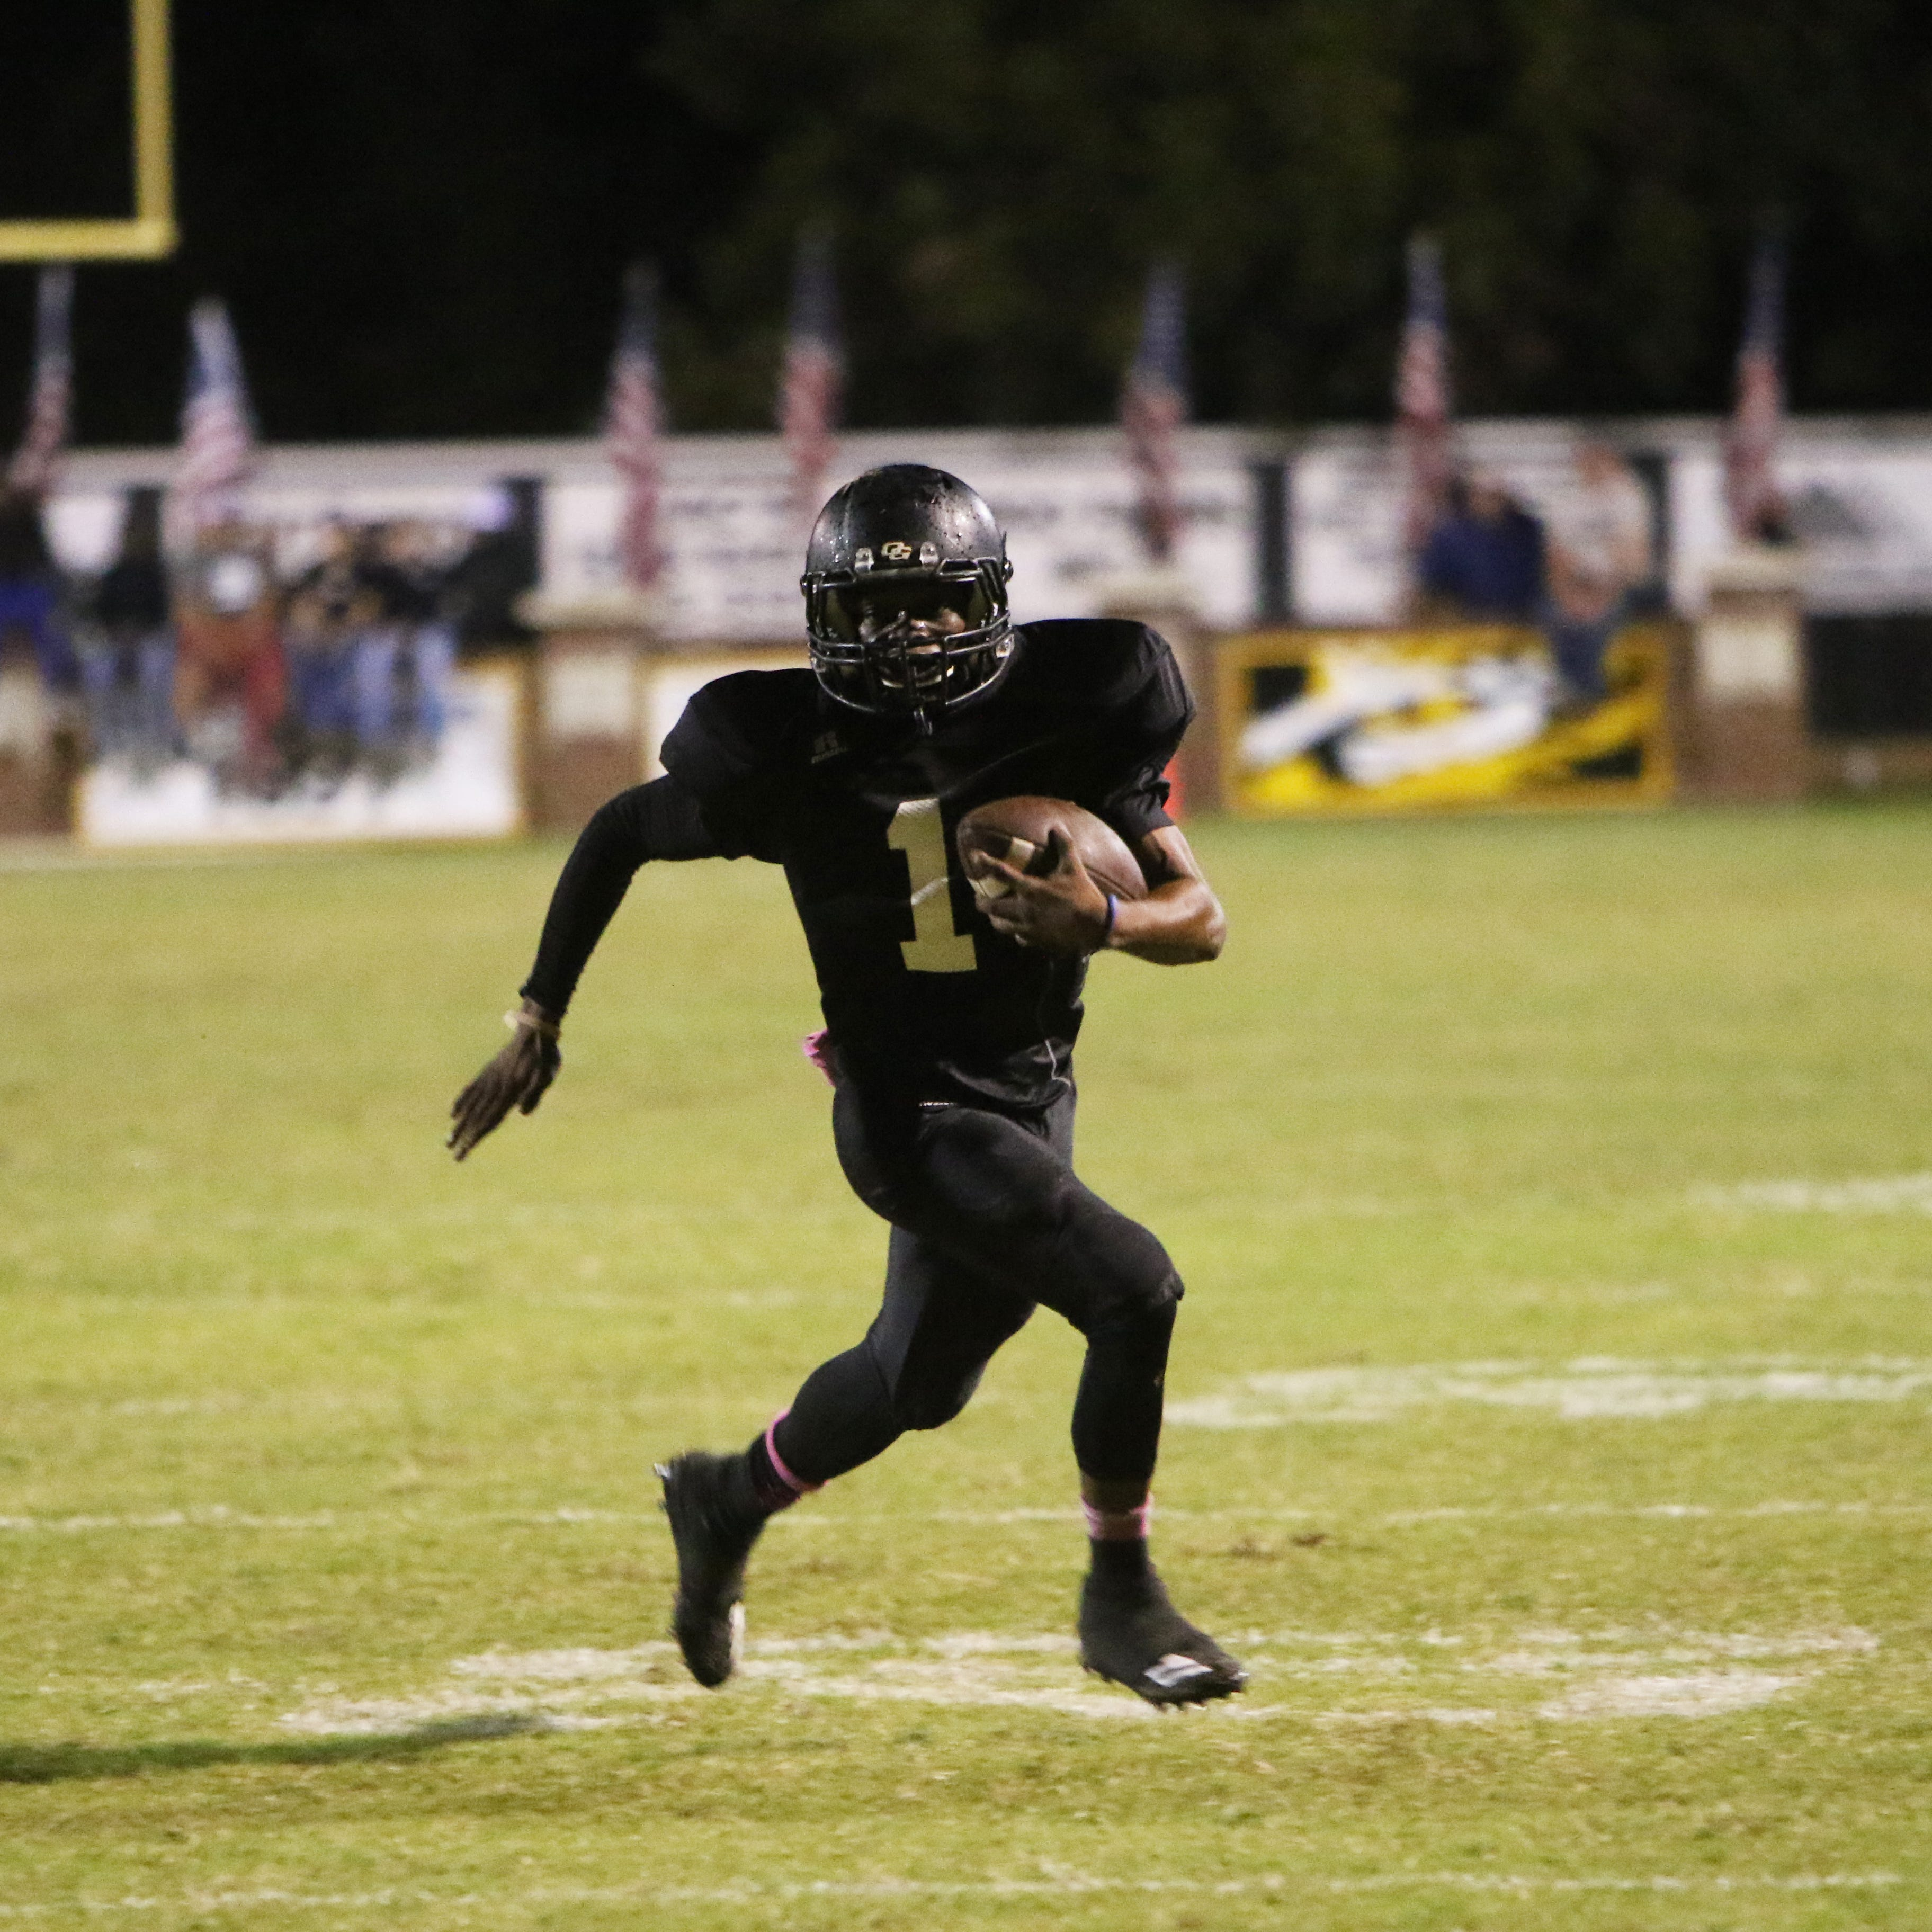 Break on through: Oak Grove begins march to Superdome